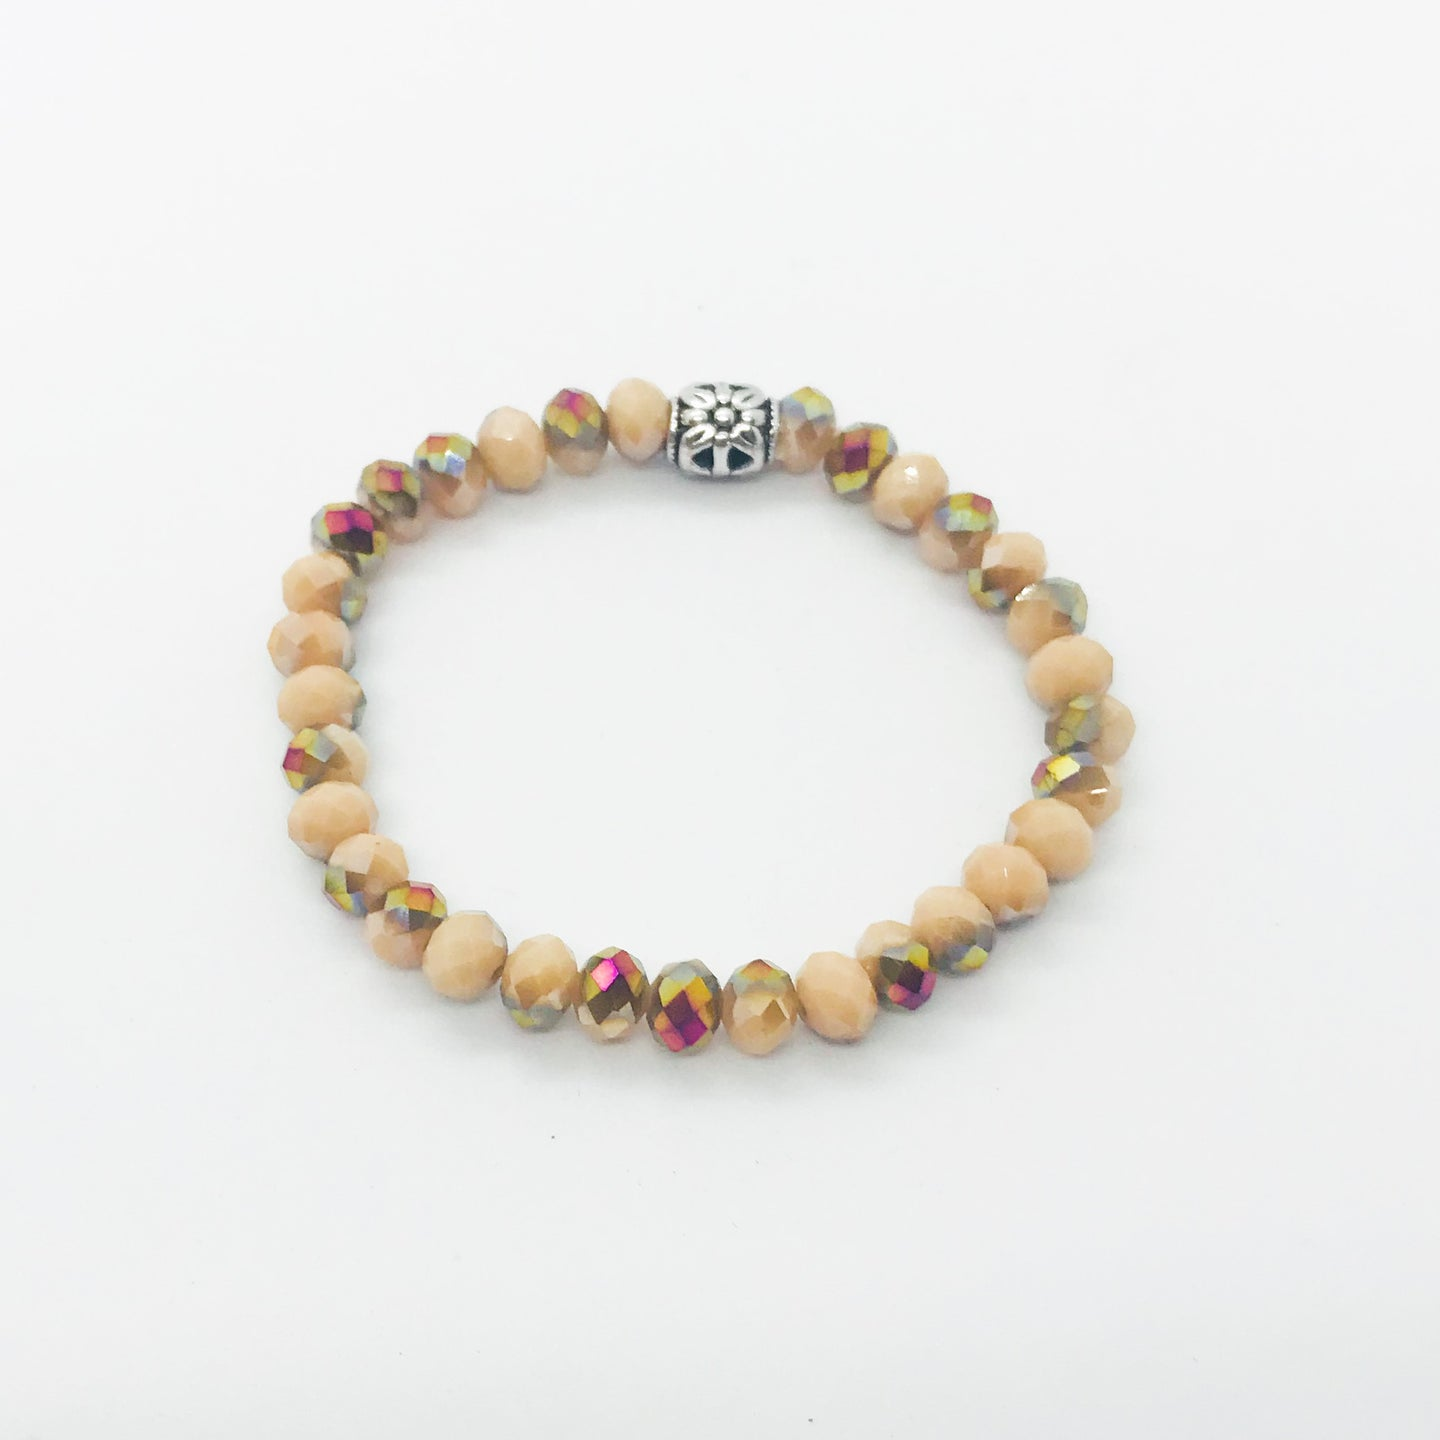 Glass Bead Stretchy Bracelet - B972